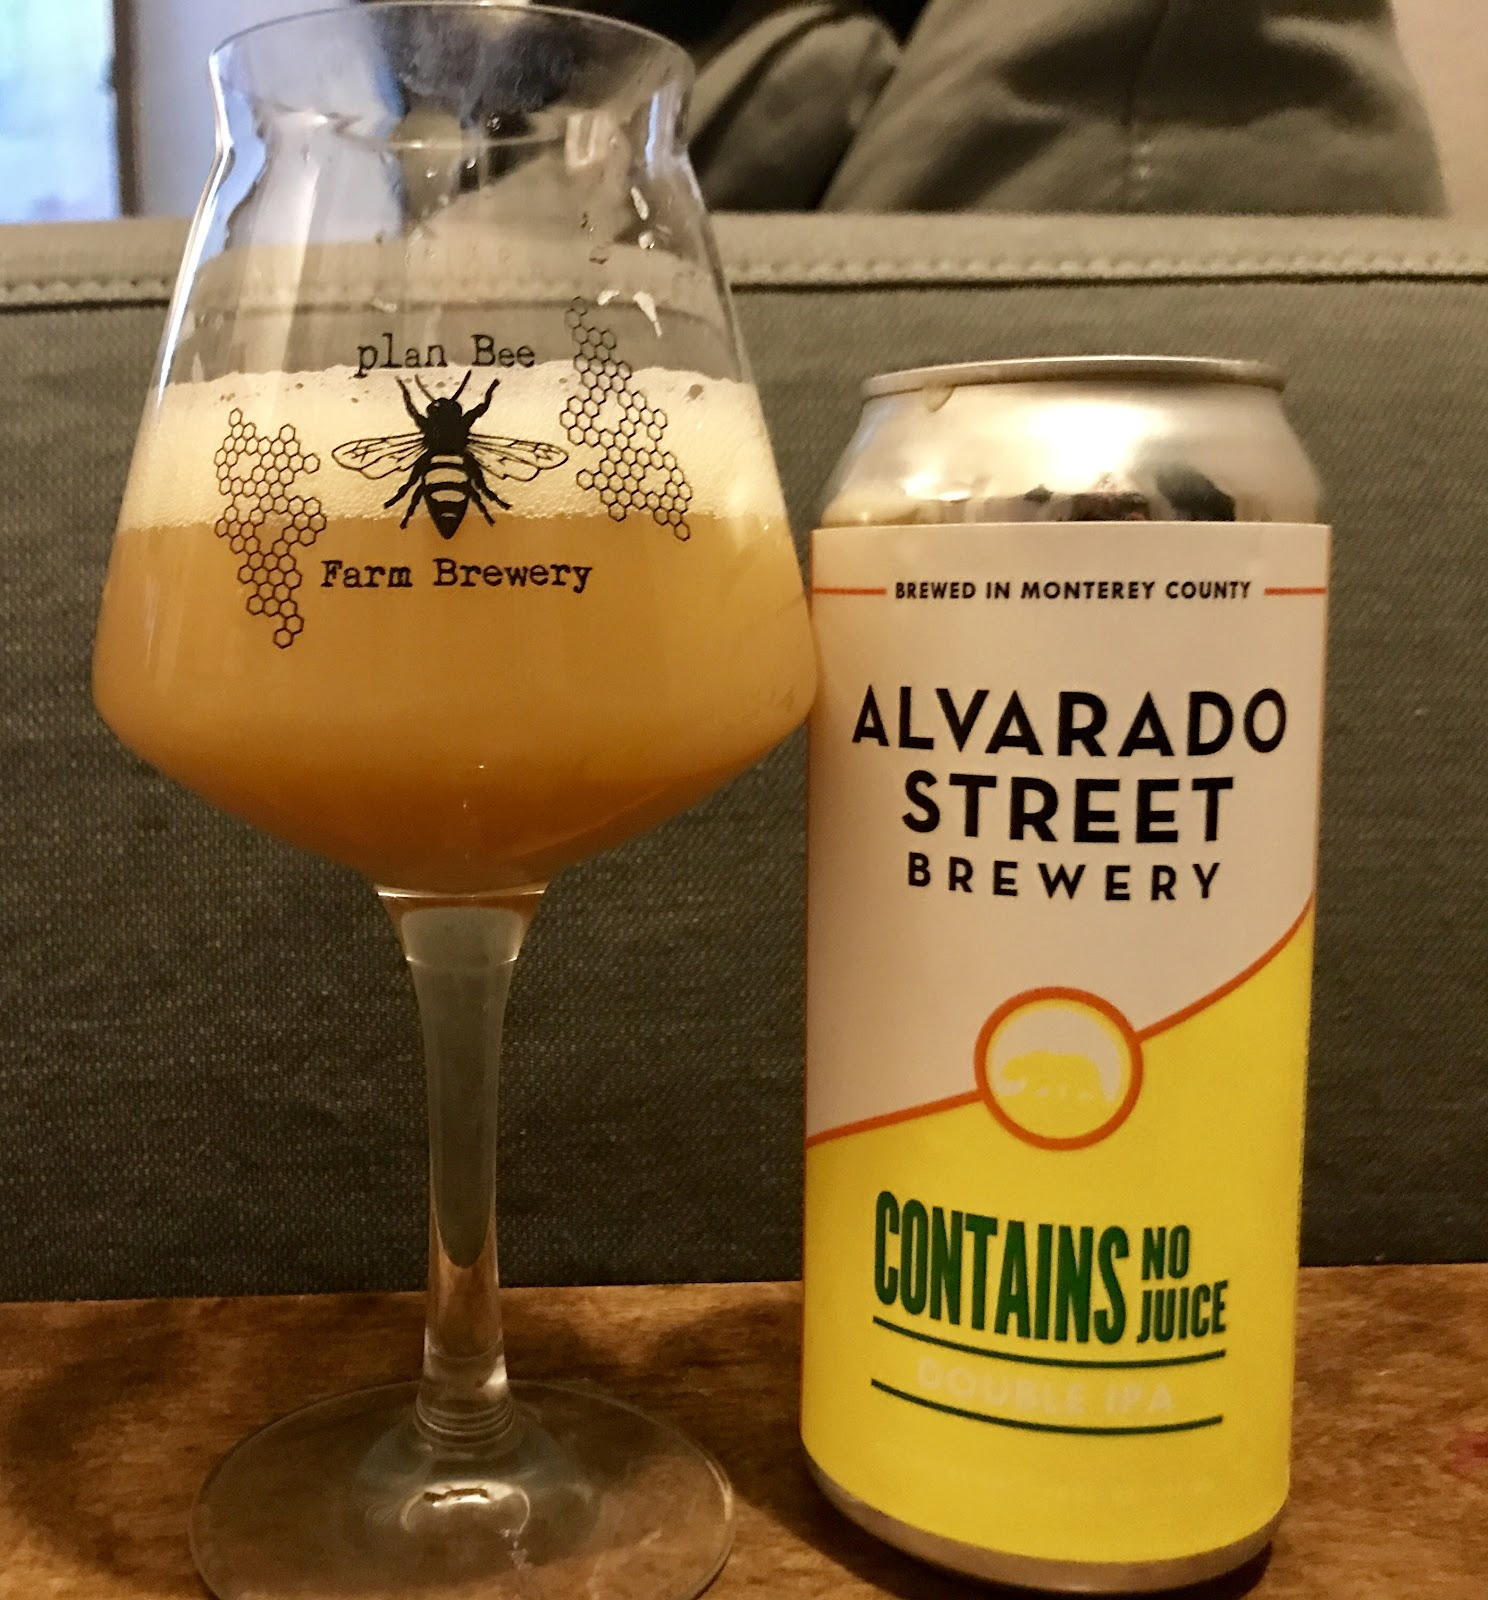 White apron ale - This Double India Pale Ale From Alvarado Street Brewery In California Pours A Thick Hazy Orange With A Big Fluffy White Head And Strong Aromas Of Orange